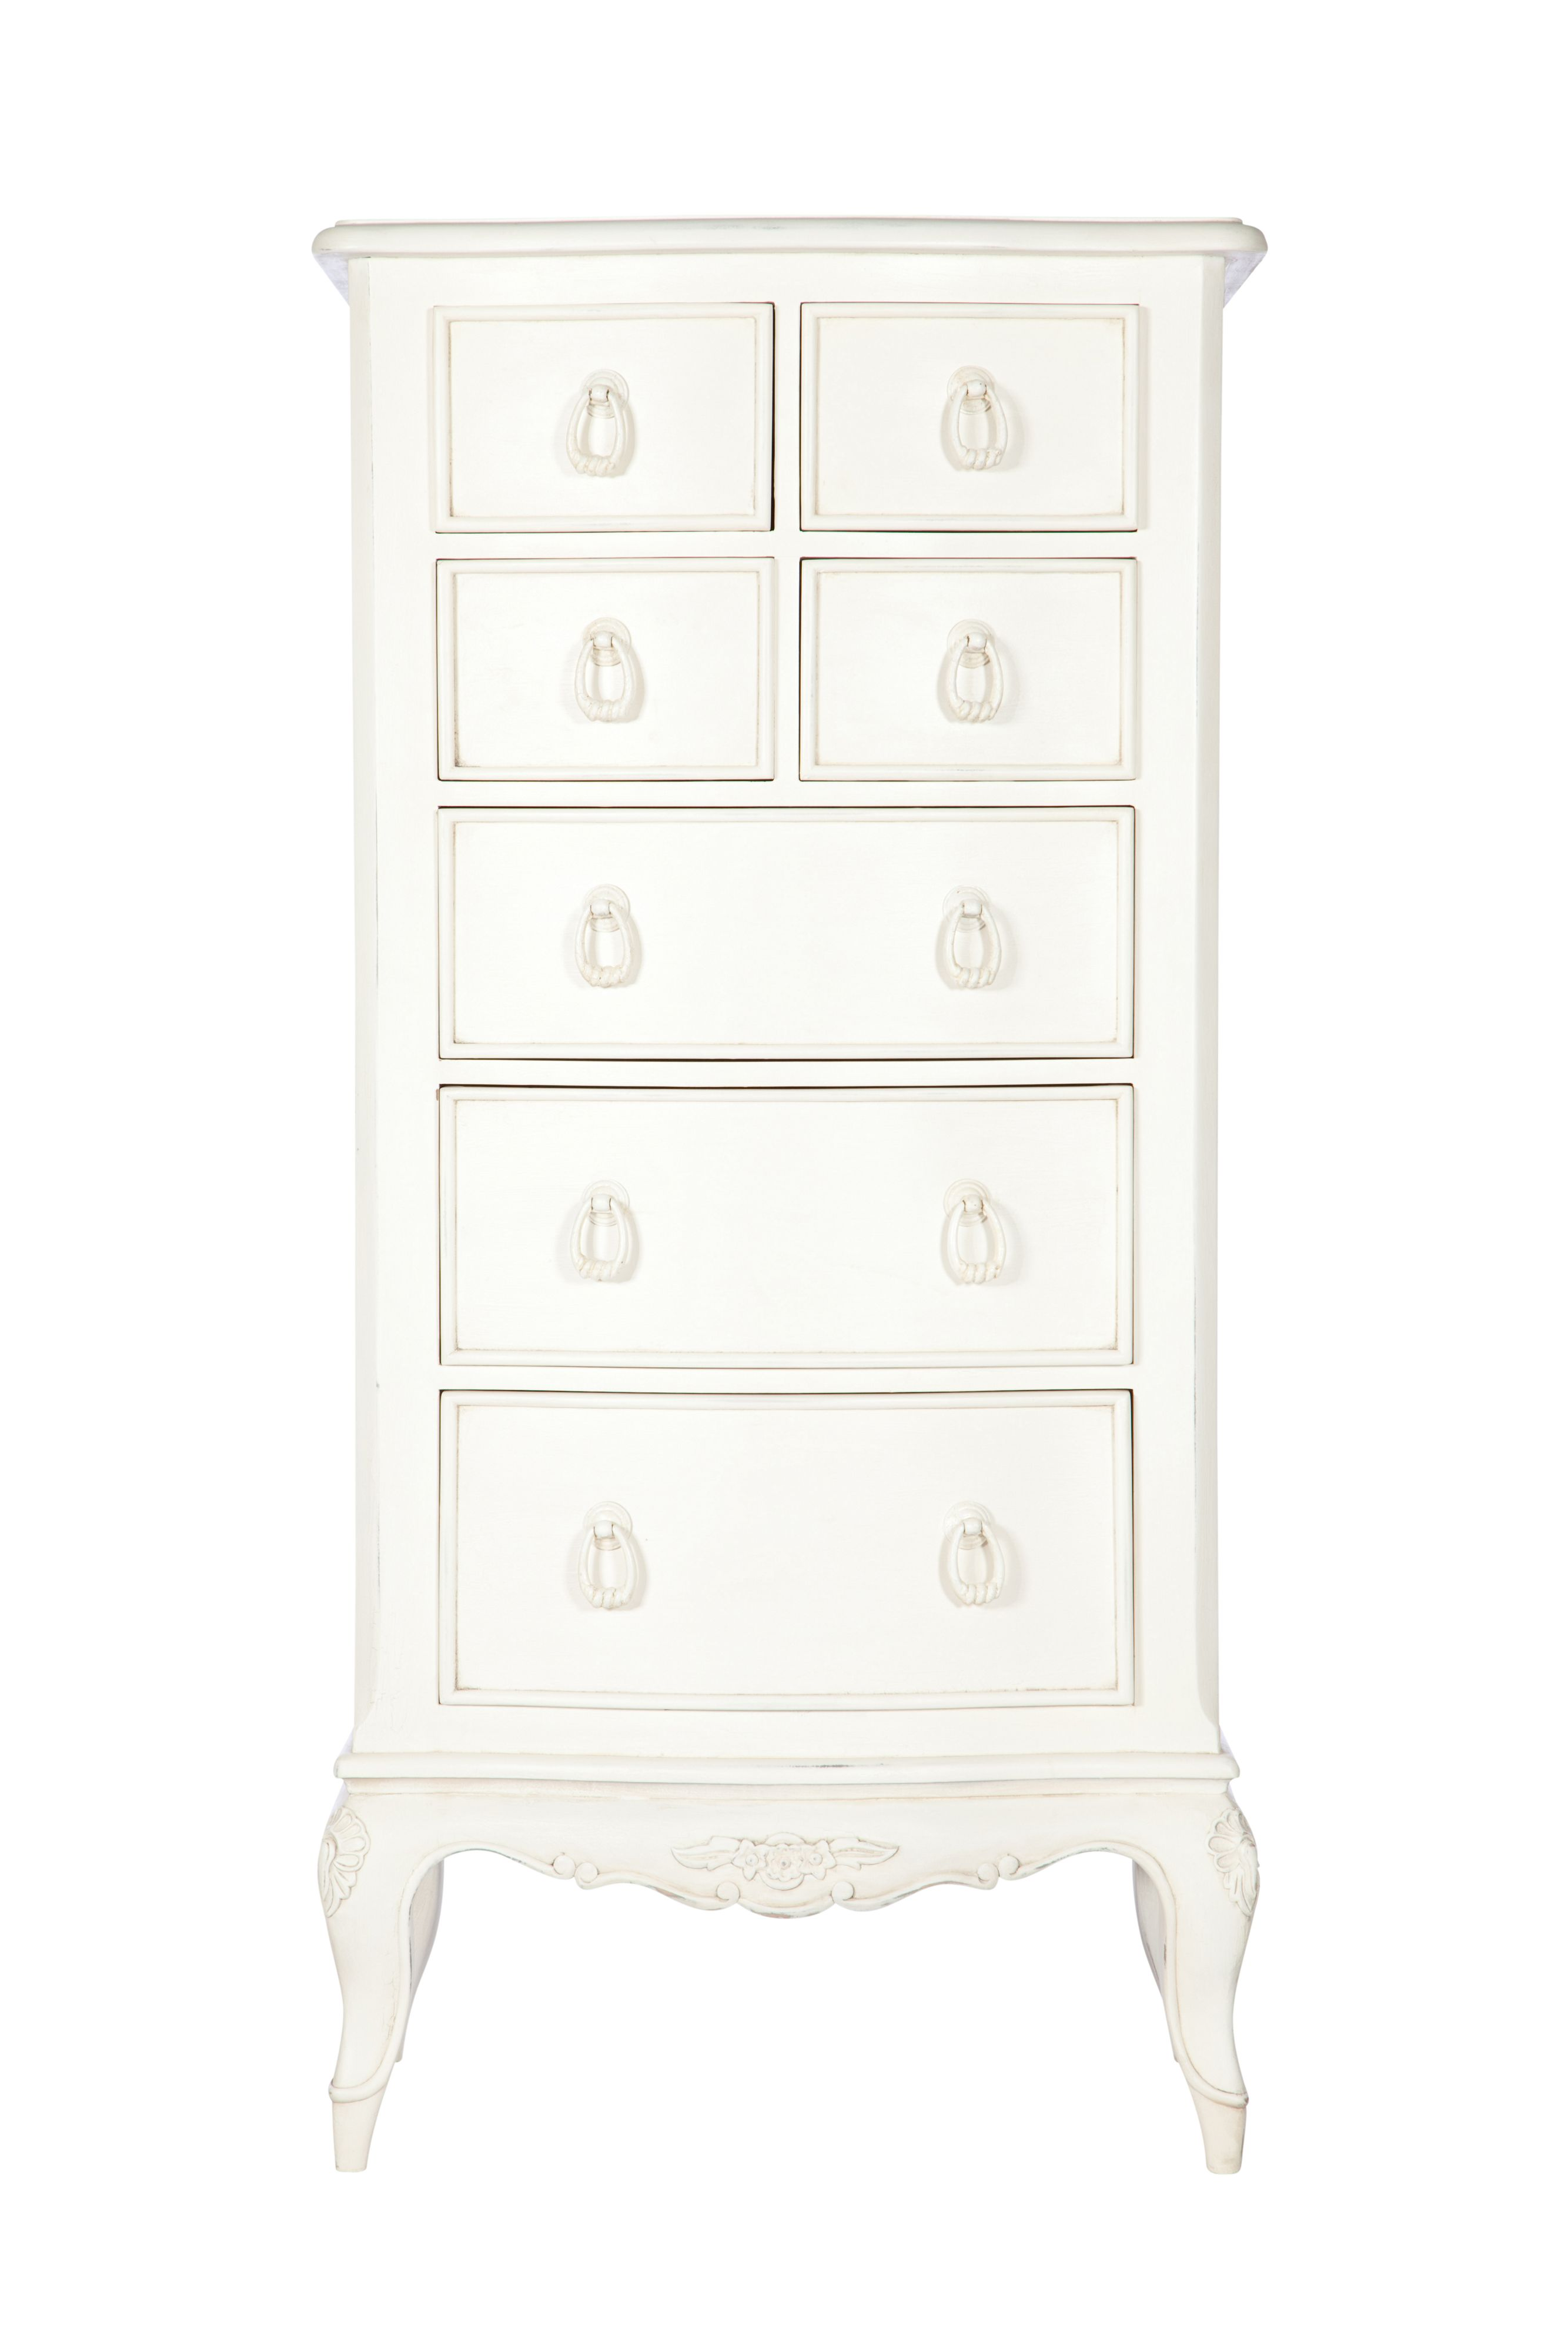 Primrose 3+4 chest of drawers